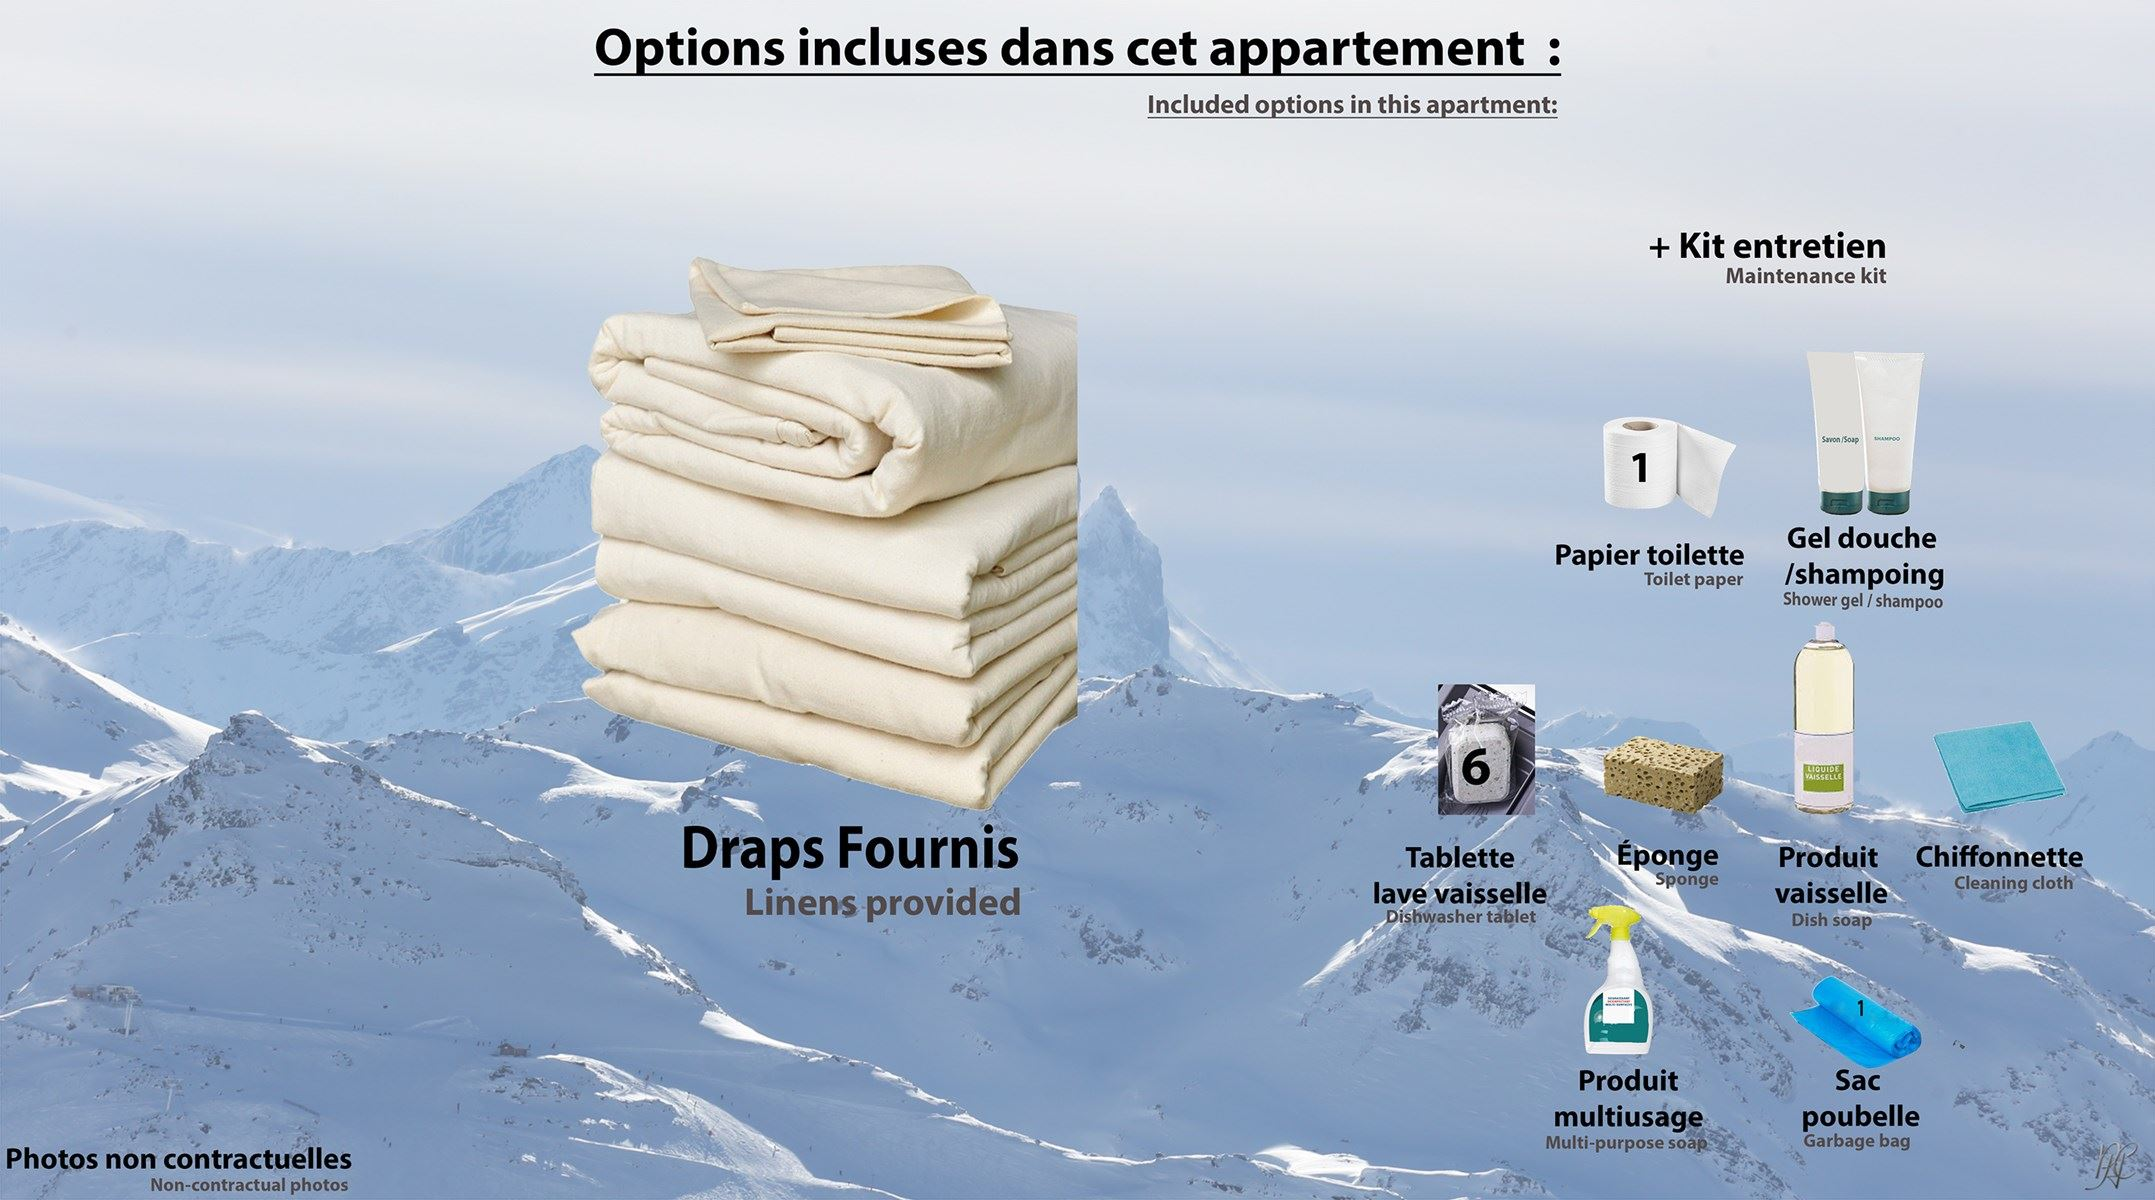 VANOISE 551 / APARTMENT 2 ROOMS CABIN 4 PERSONS - 2 SILVER SNOWFLAKES - ADA